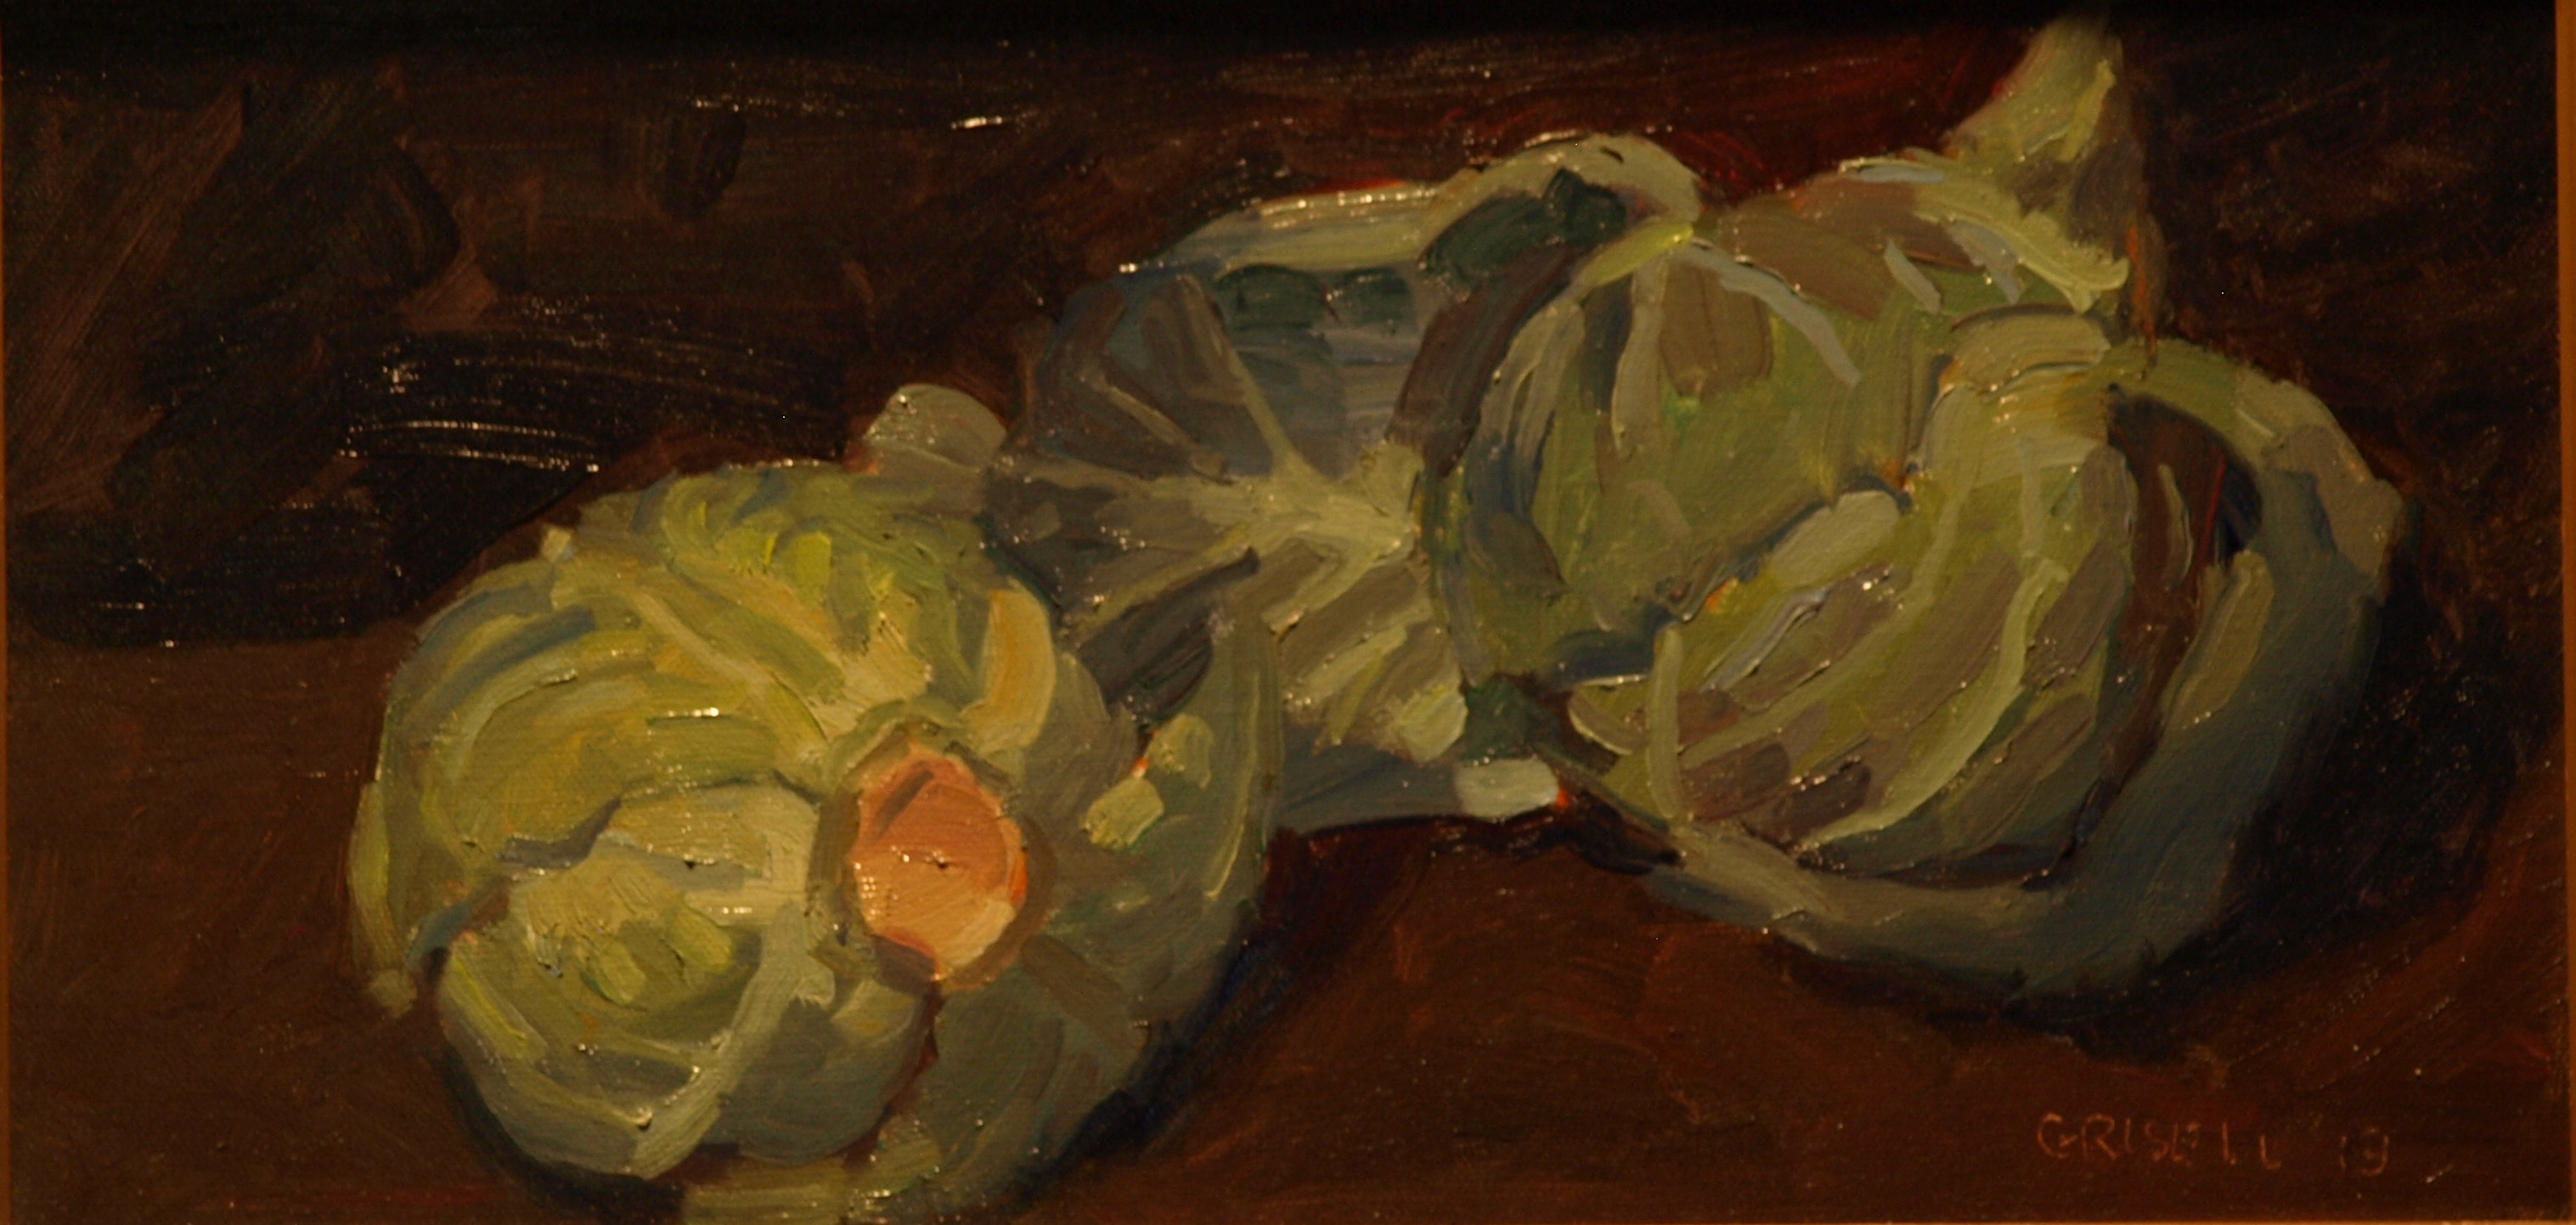 Cabbages, Oil on Canvas, 9 x 16 Inches, by Susan Grisell, $250